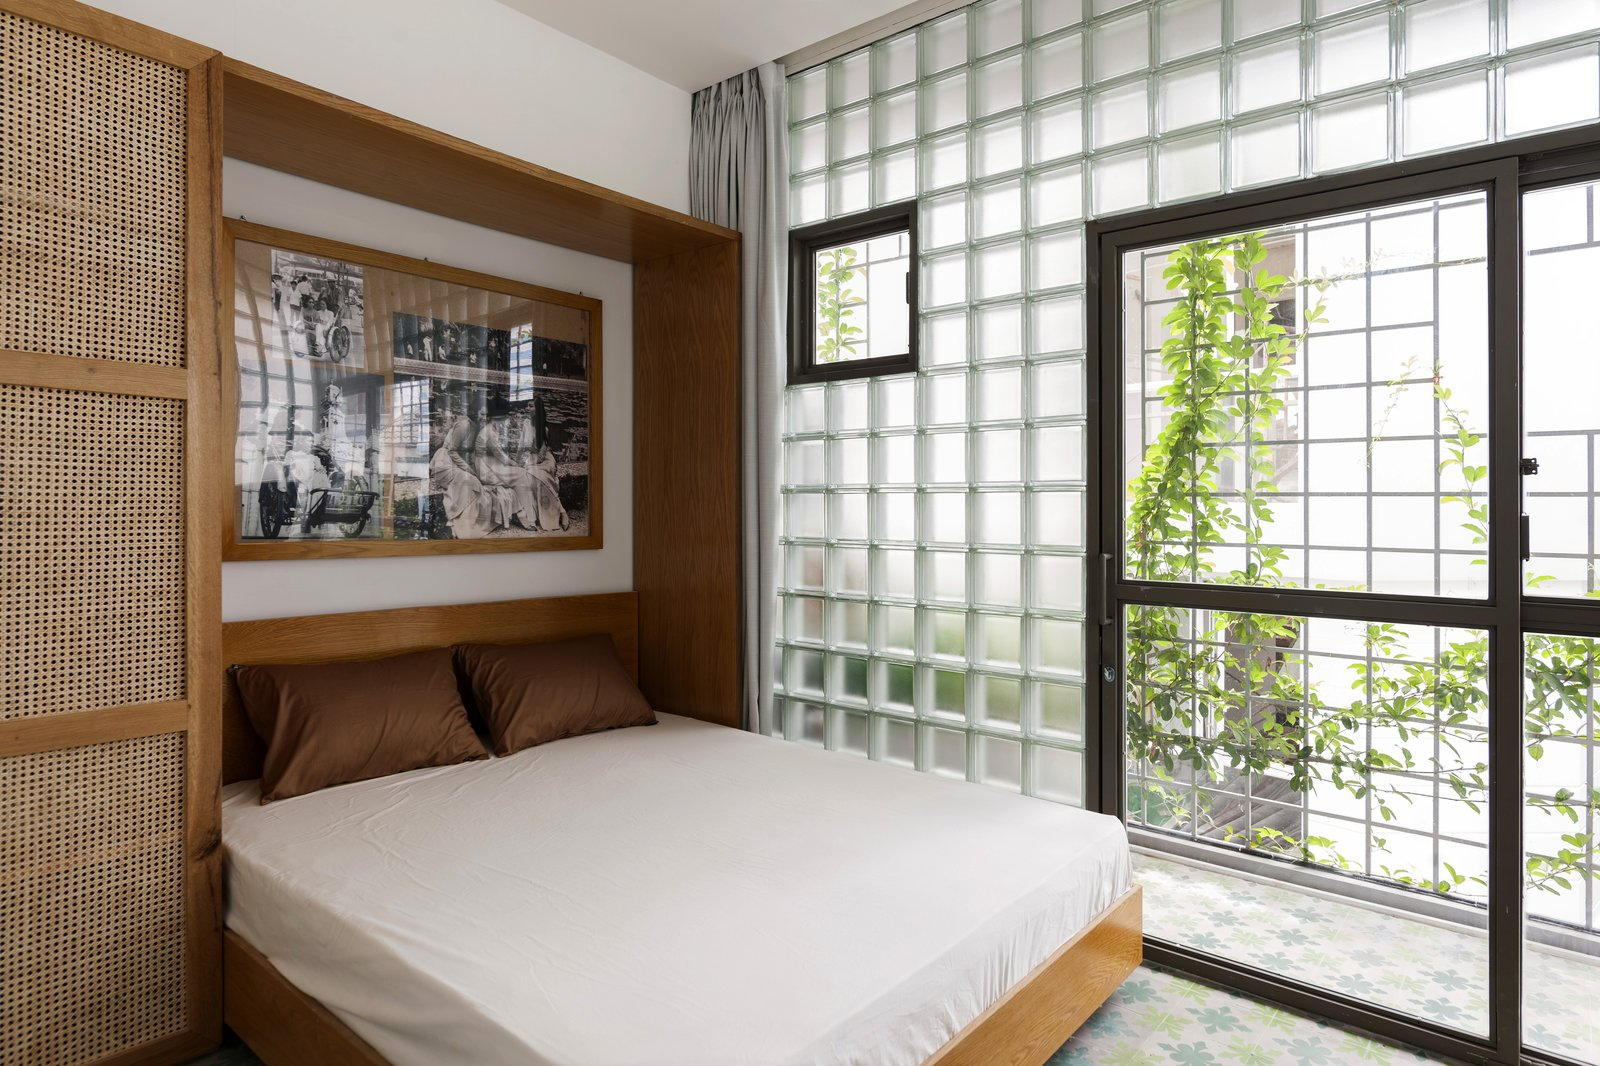 Bedroom, Bed, Porcelain Tile, and Ceramic Tile The glass-block  Bedroom Bed Porcelain Tile Photos from This Vietnamese Micro Home Is as Practical as It Is Radiant